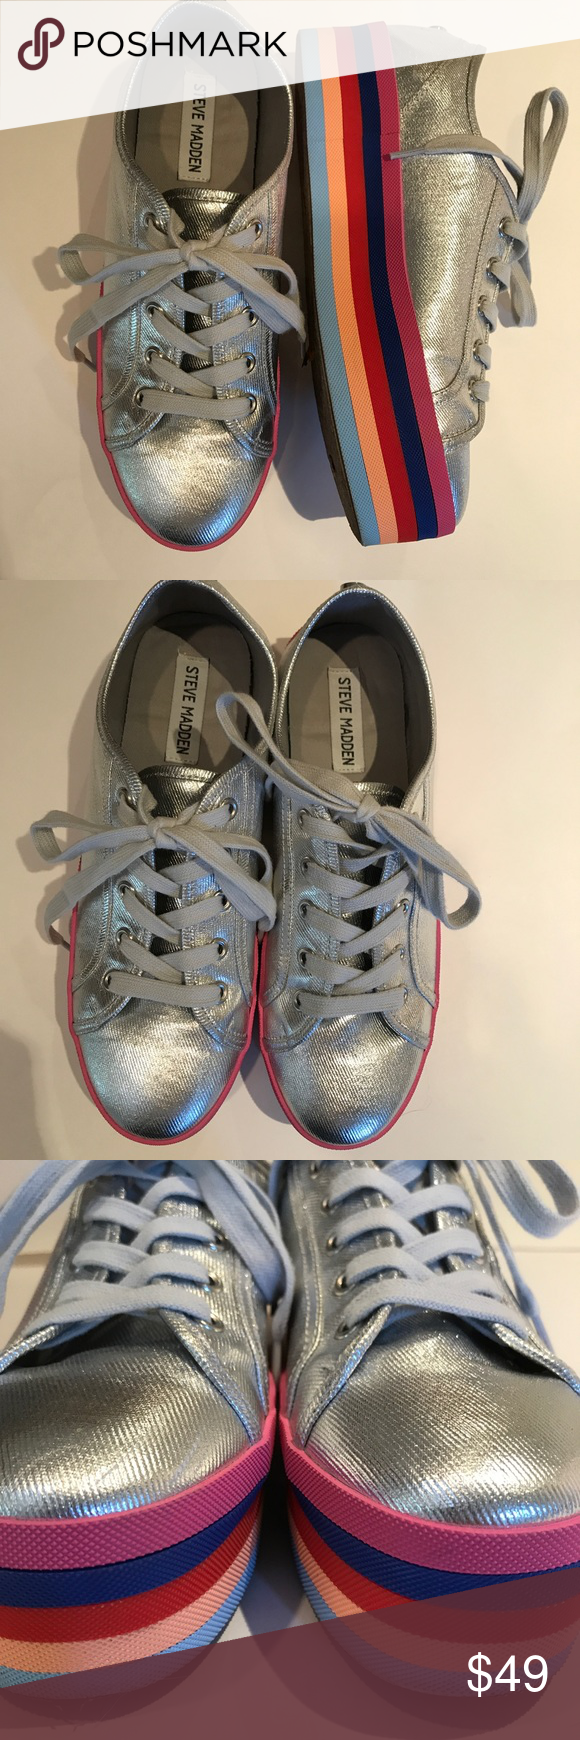 ed667014a46 Steve Madden rainbow platform silver sneakers 8.5 Adorbs and on trend! In  great condition-only worn 3 times. Steve Madden Shoes Sneakers